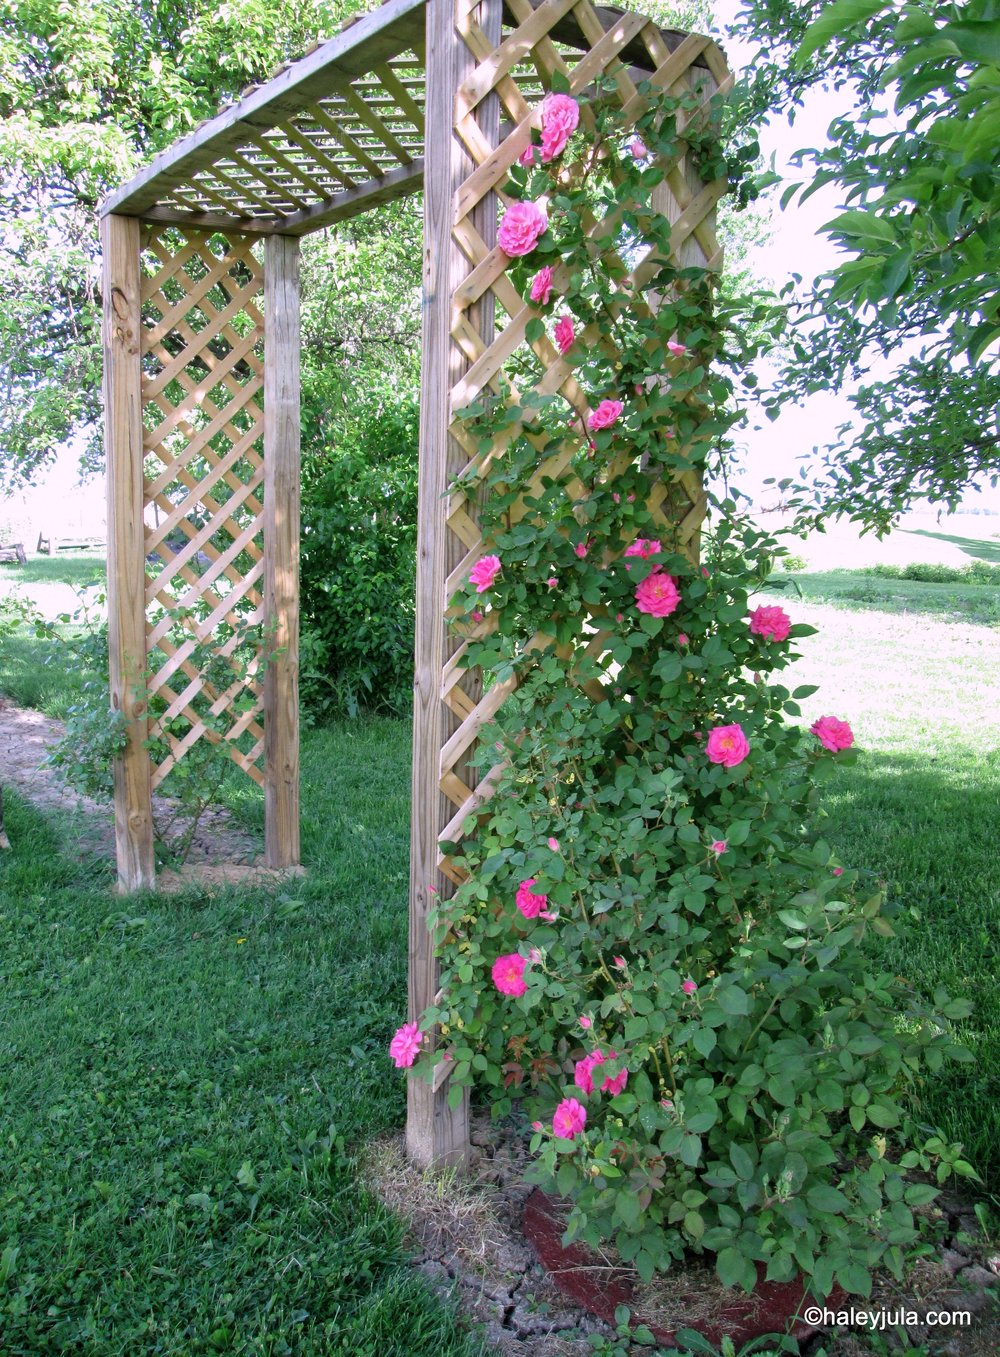 Roses blooming in the Spring